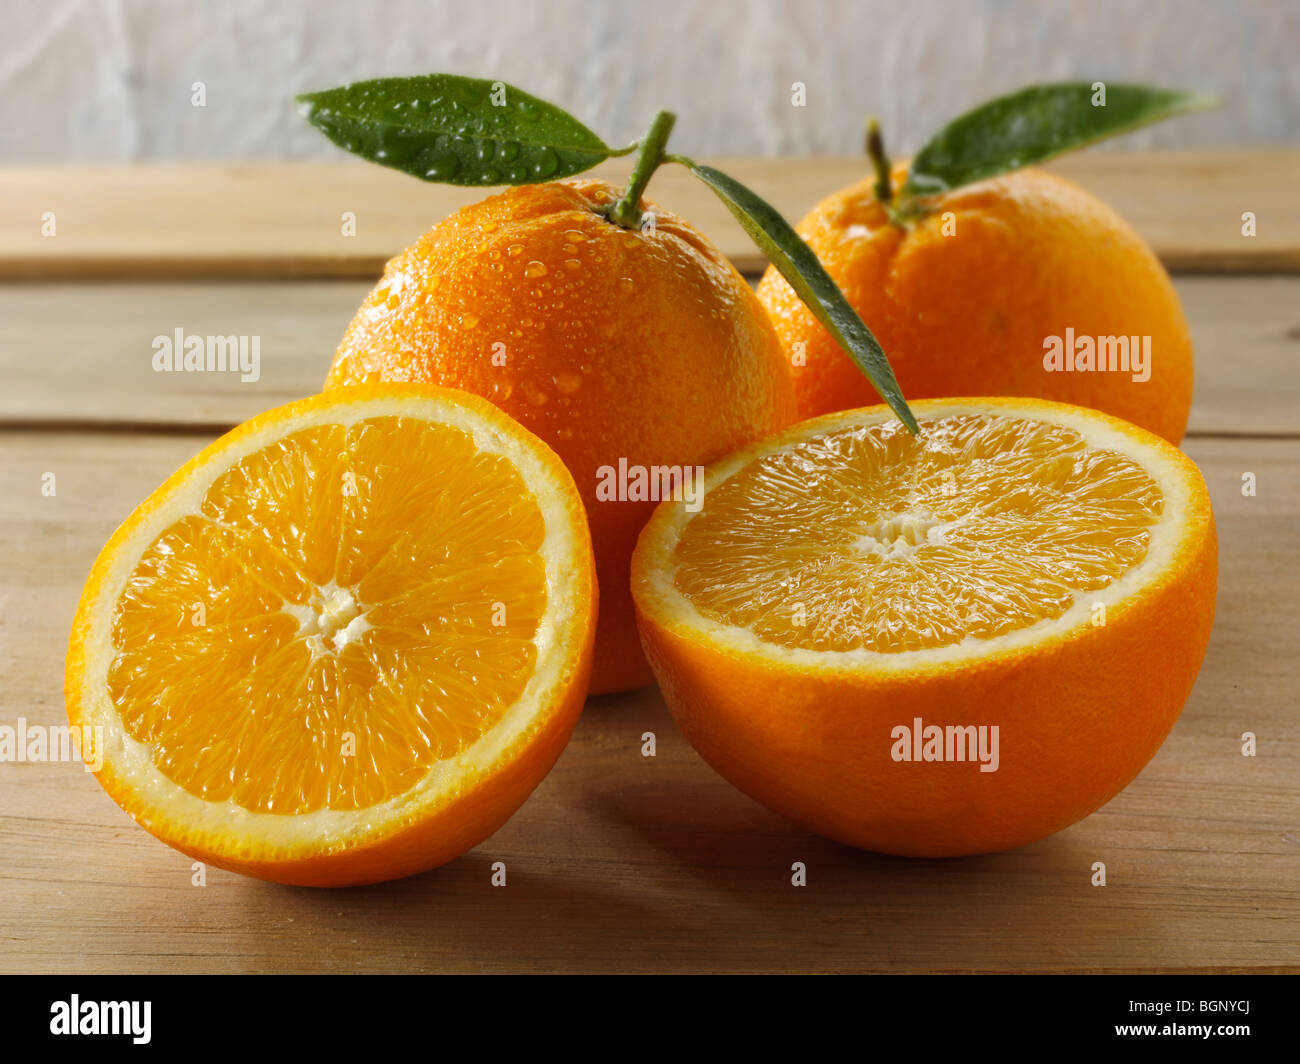 Whole and cut fresh oranges with leaves - Stock Image